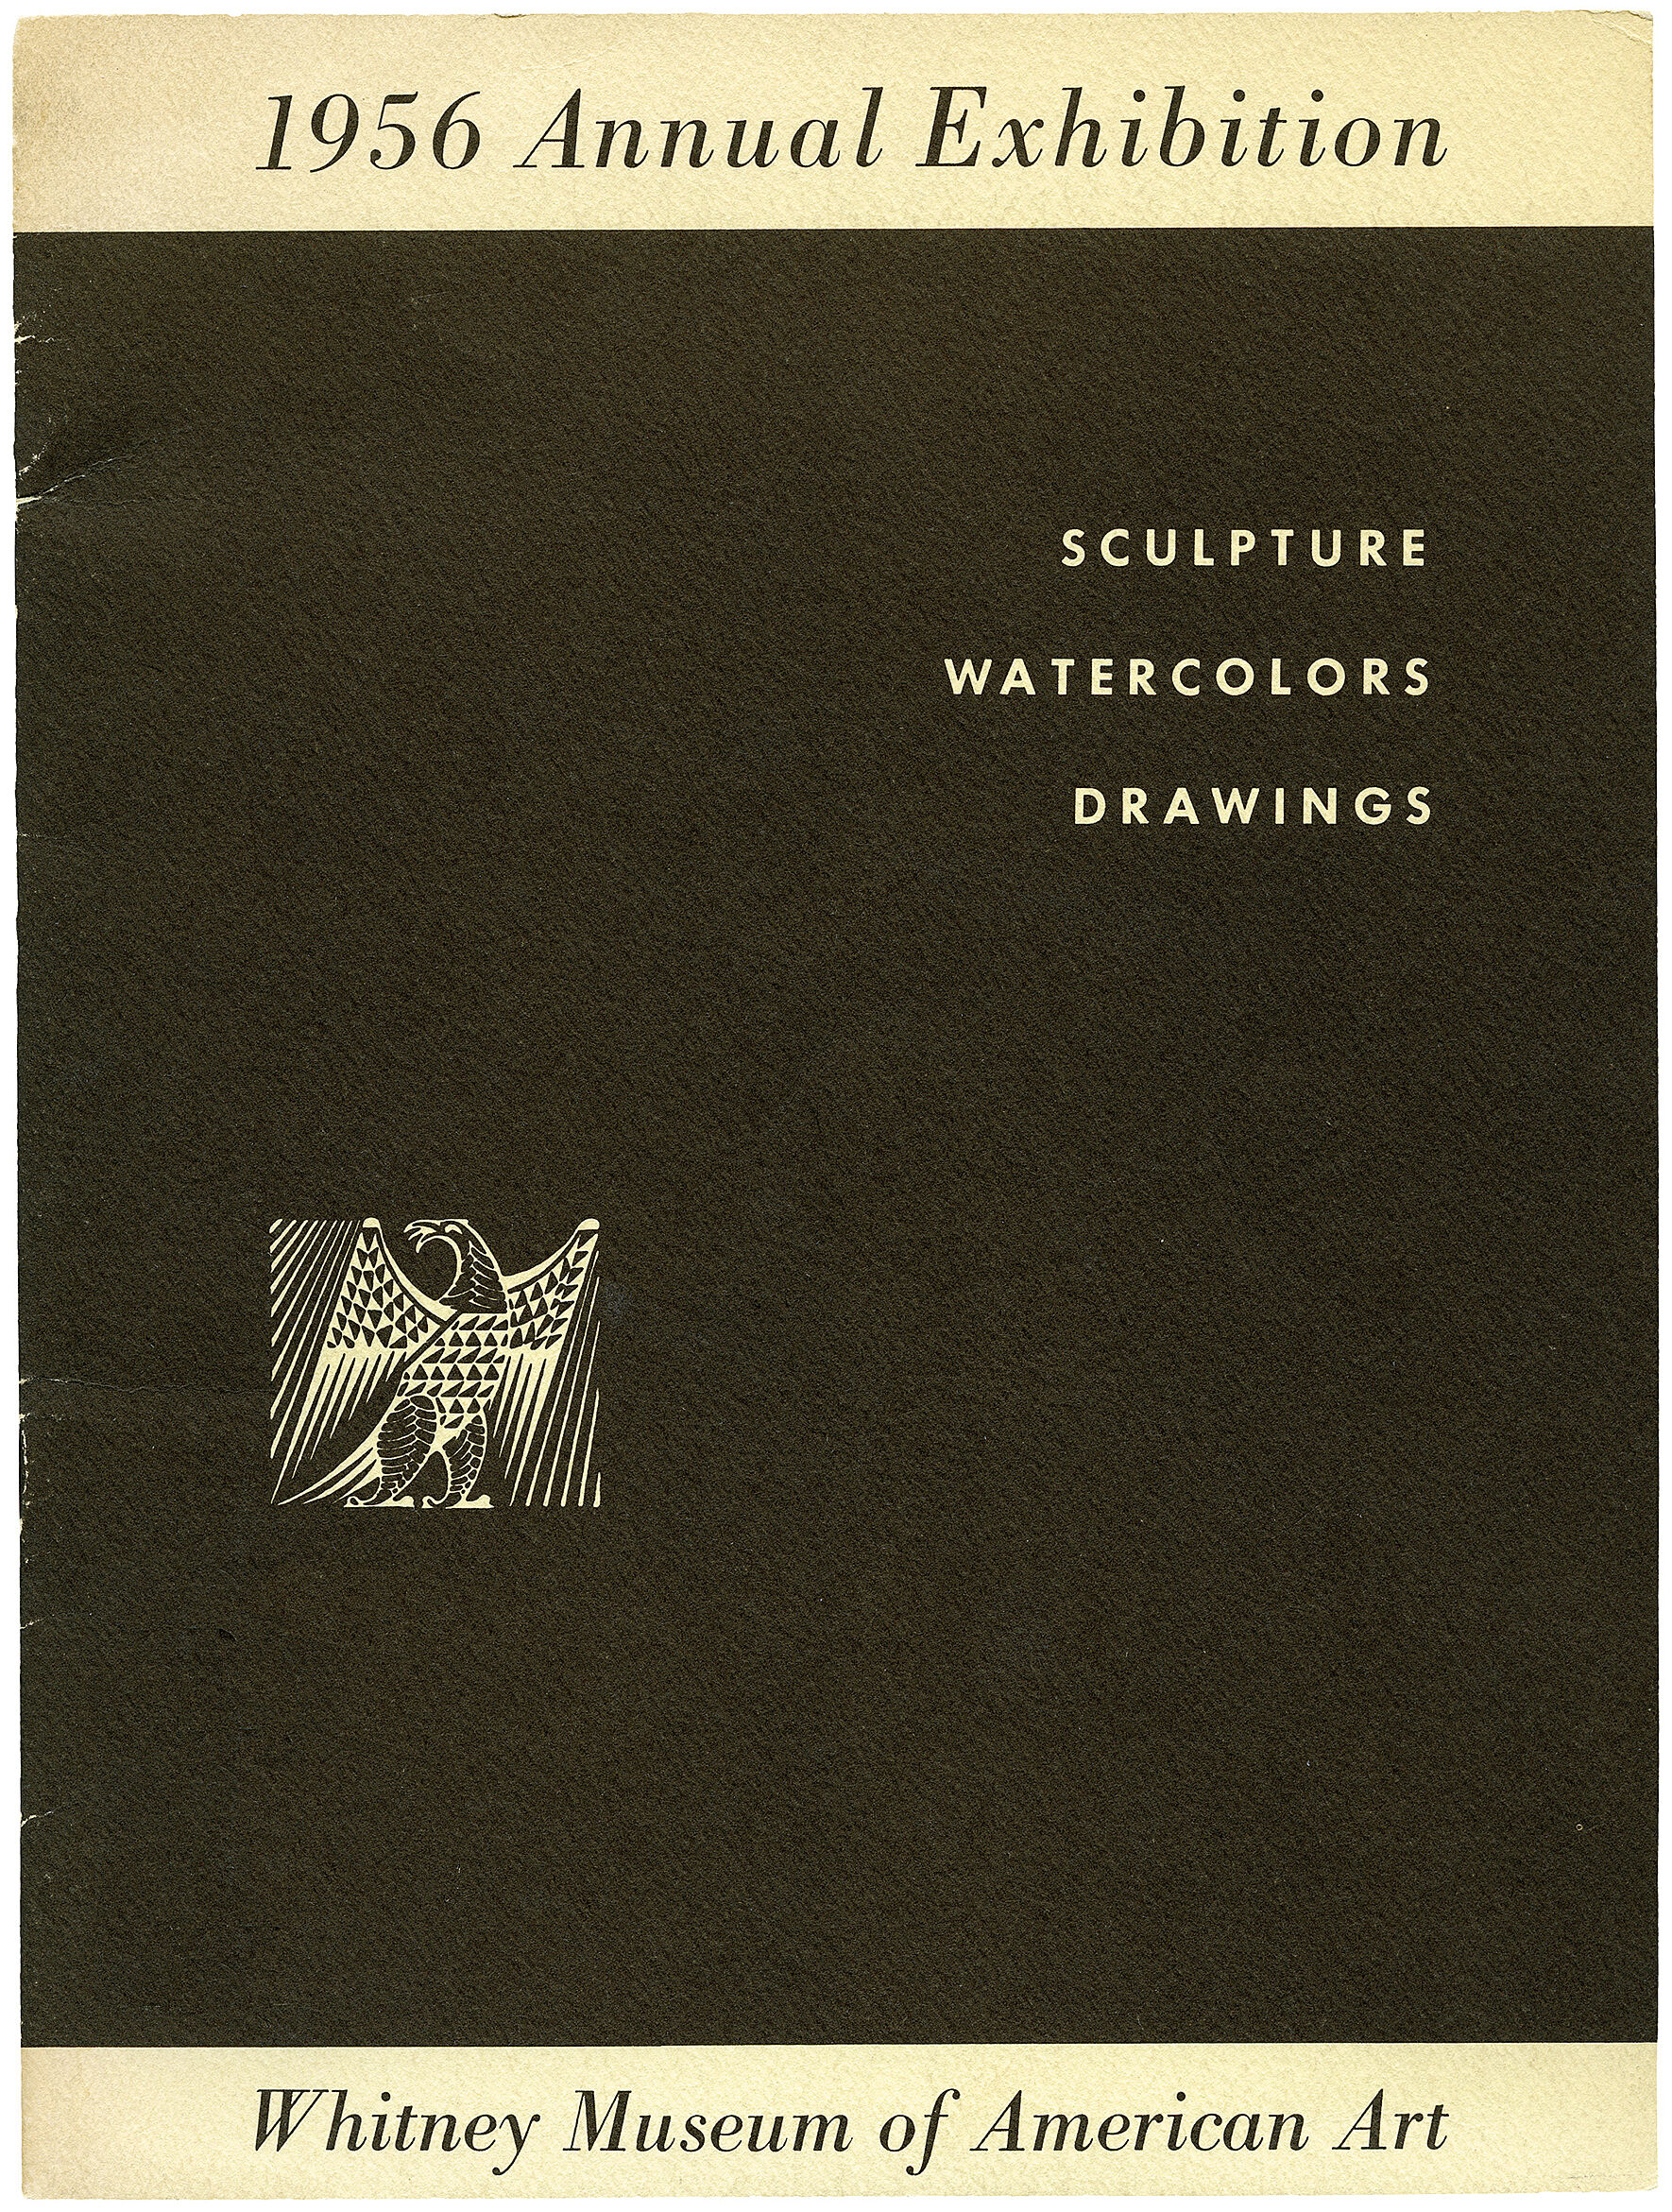 Cover for 1956 Annual Exhibition of Contemporary American Sculpture, Watercolors and Drawings catalogue